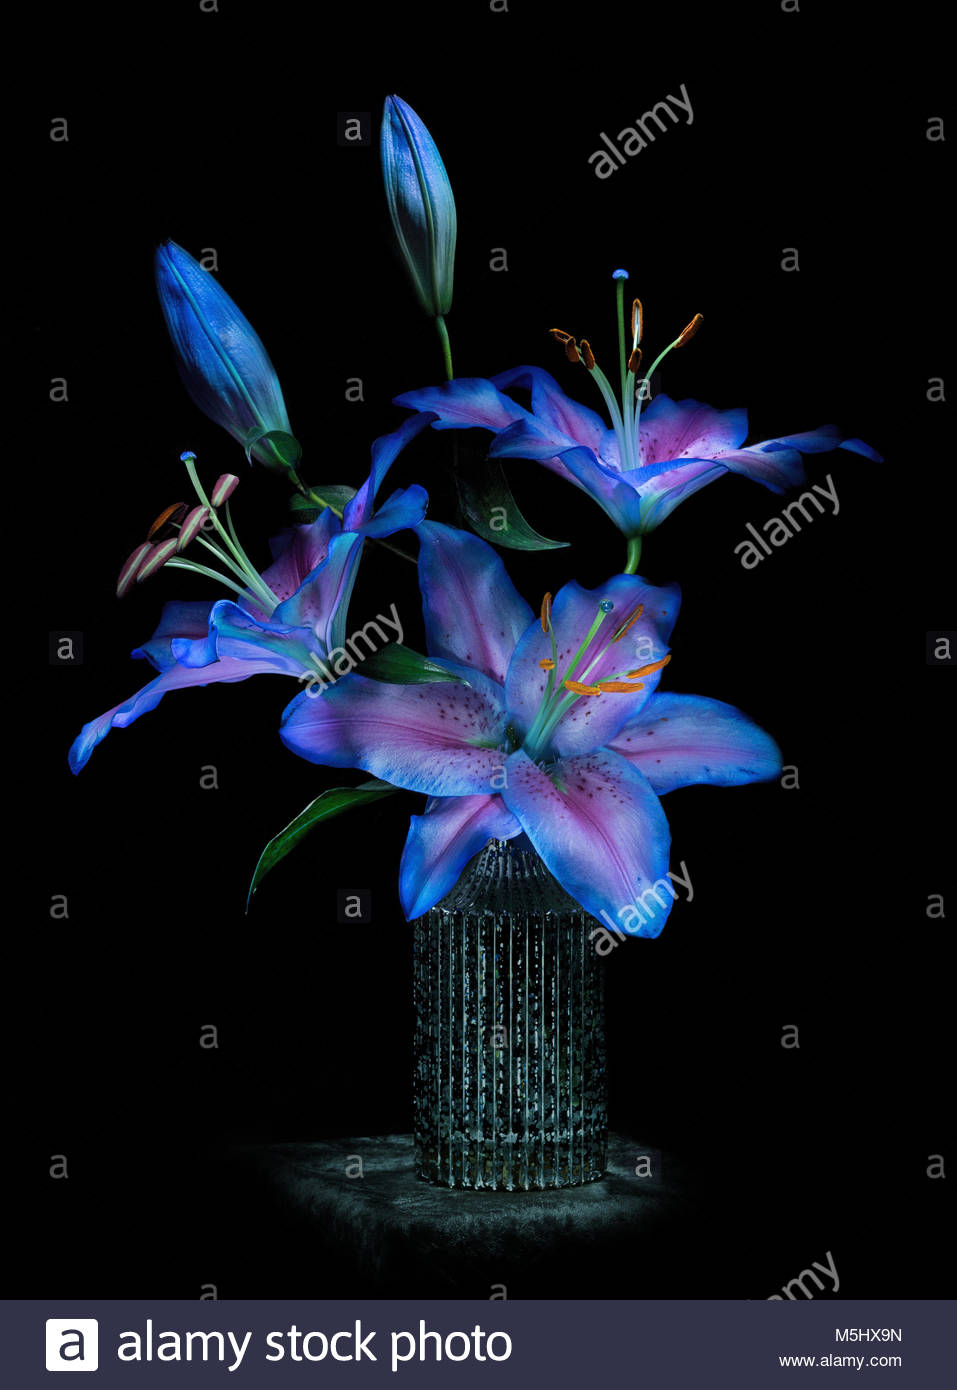 Stargazer Lilies And Buds Stock Photos Stargazer Lilies And Buds